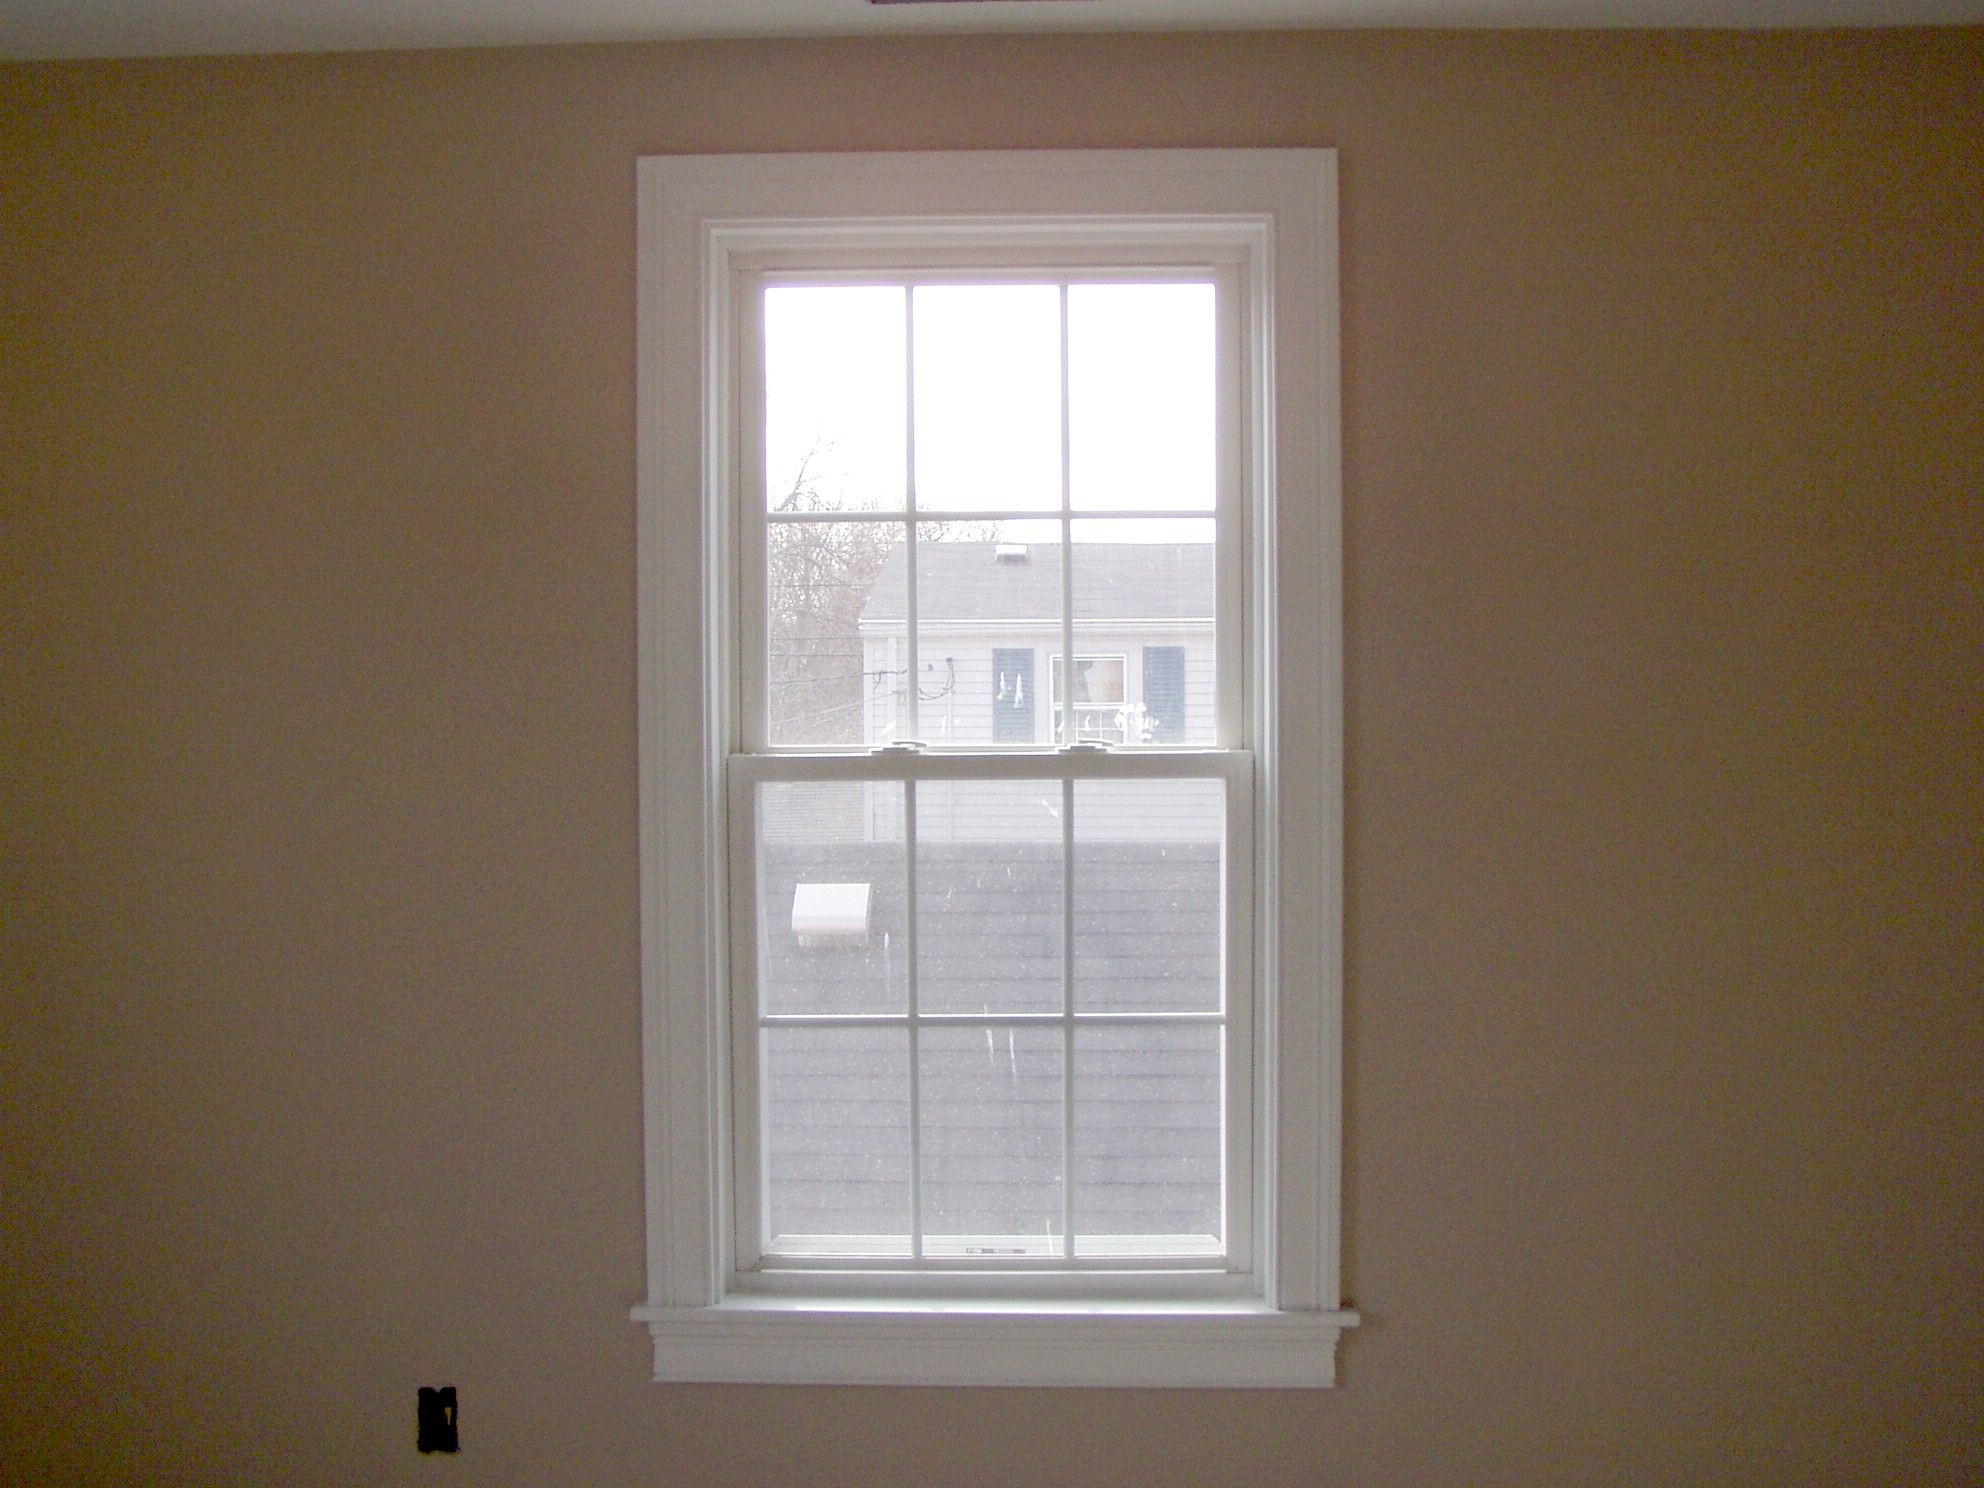 New Construction Door Trim Paint And Window Trim Master Closet With Paint And Trim Interior Window Trim Interior Windows Window Trim Styles